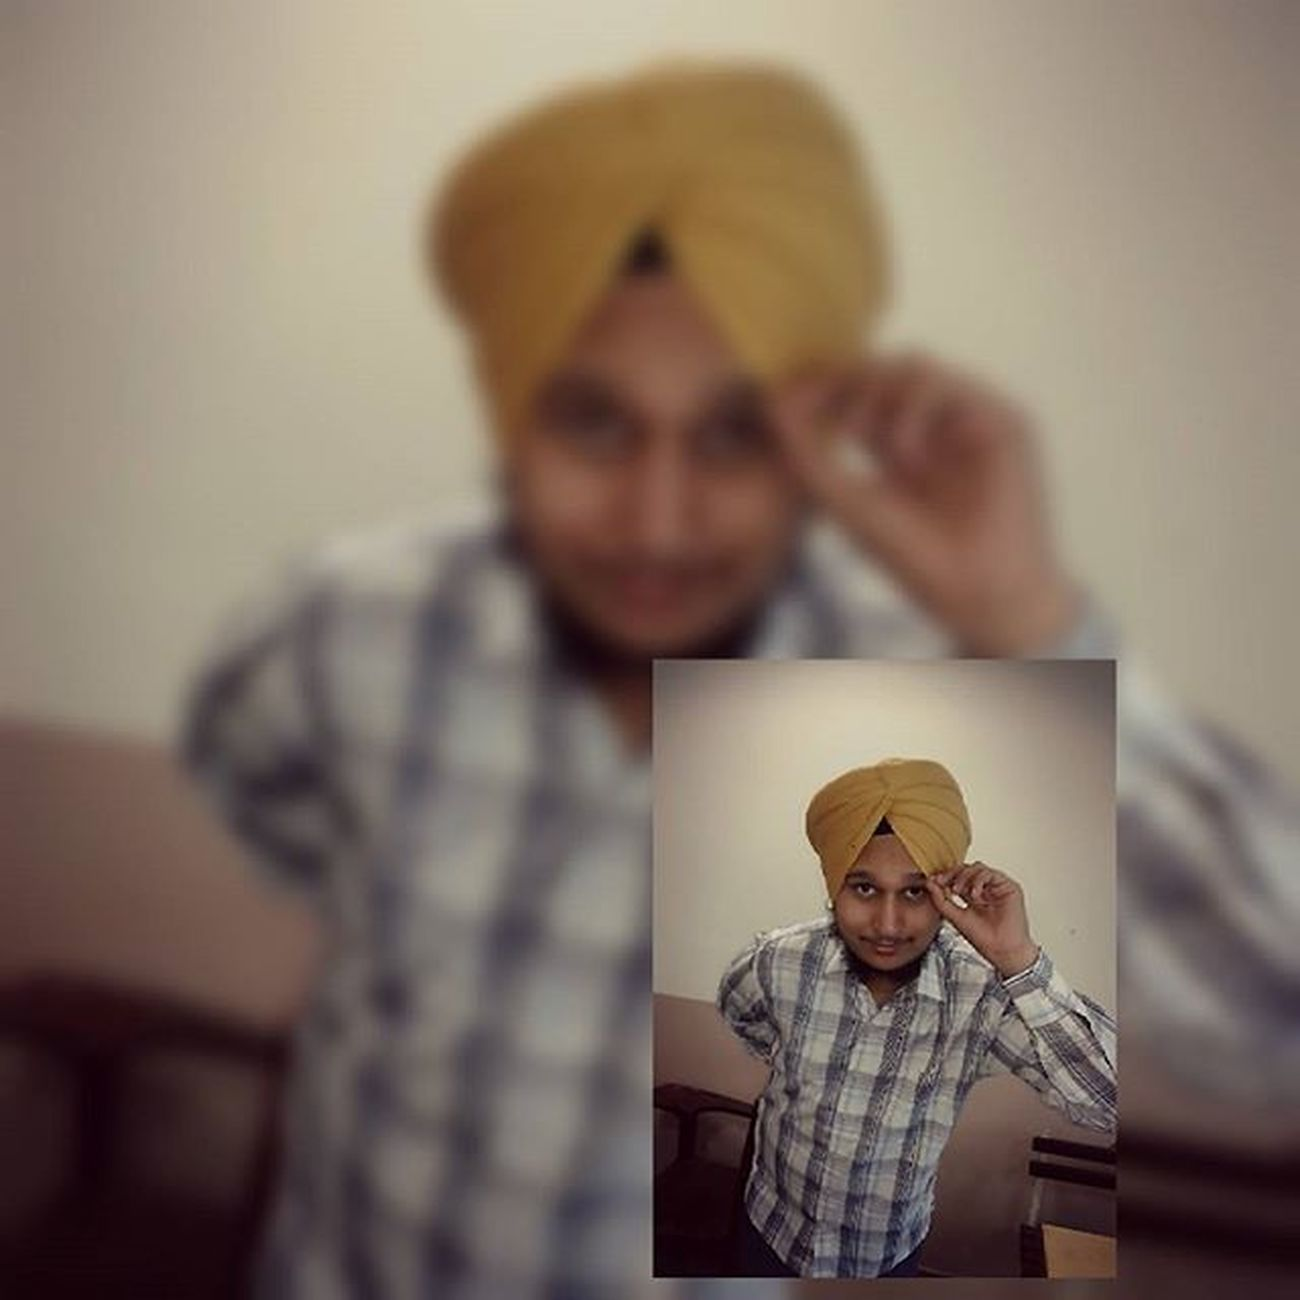 Picsart Squarefit Turbanvalaboy Alwayspersonshavedualpersonalities ...